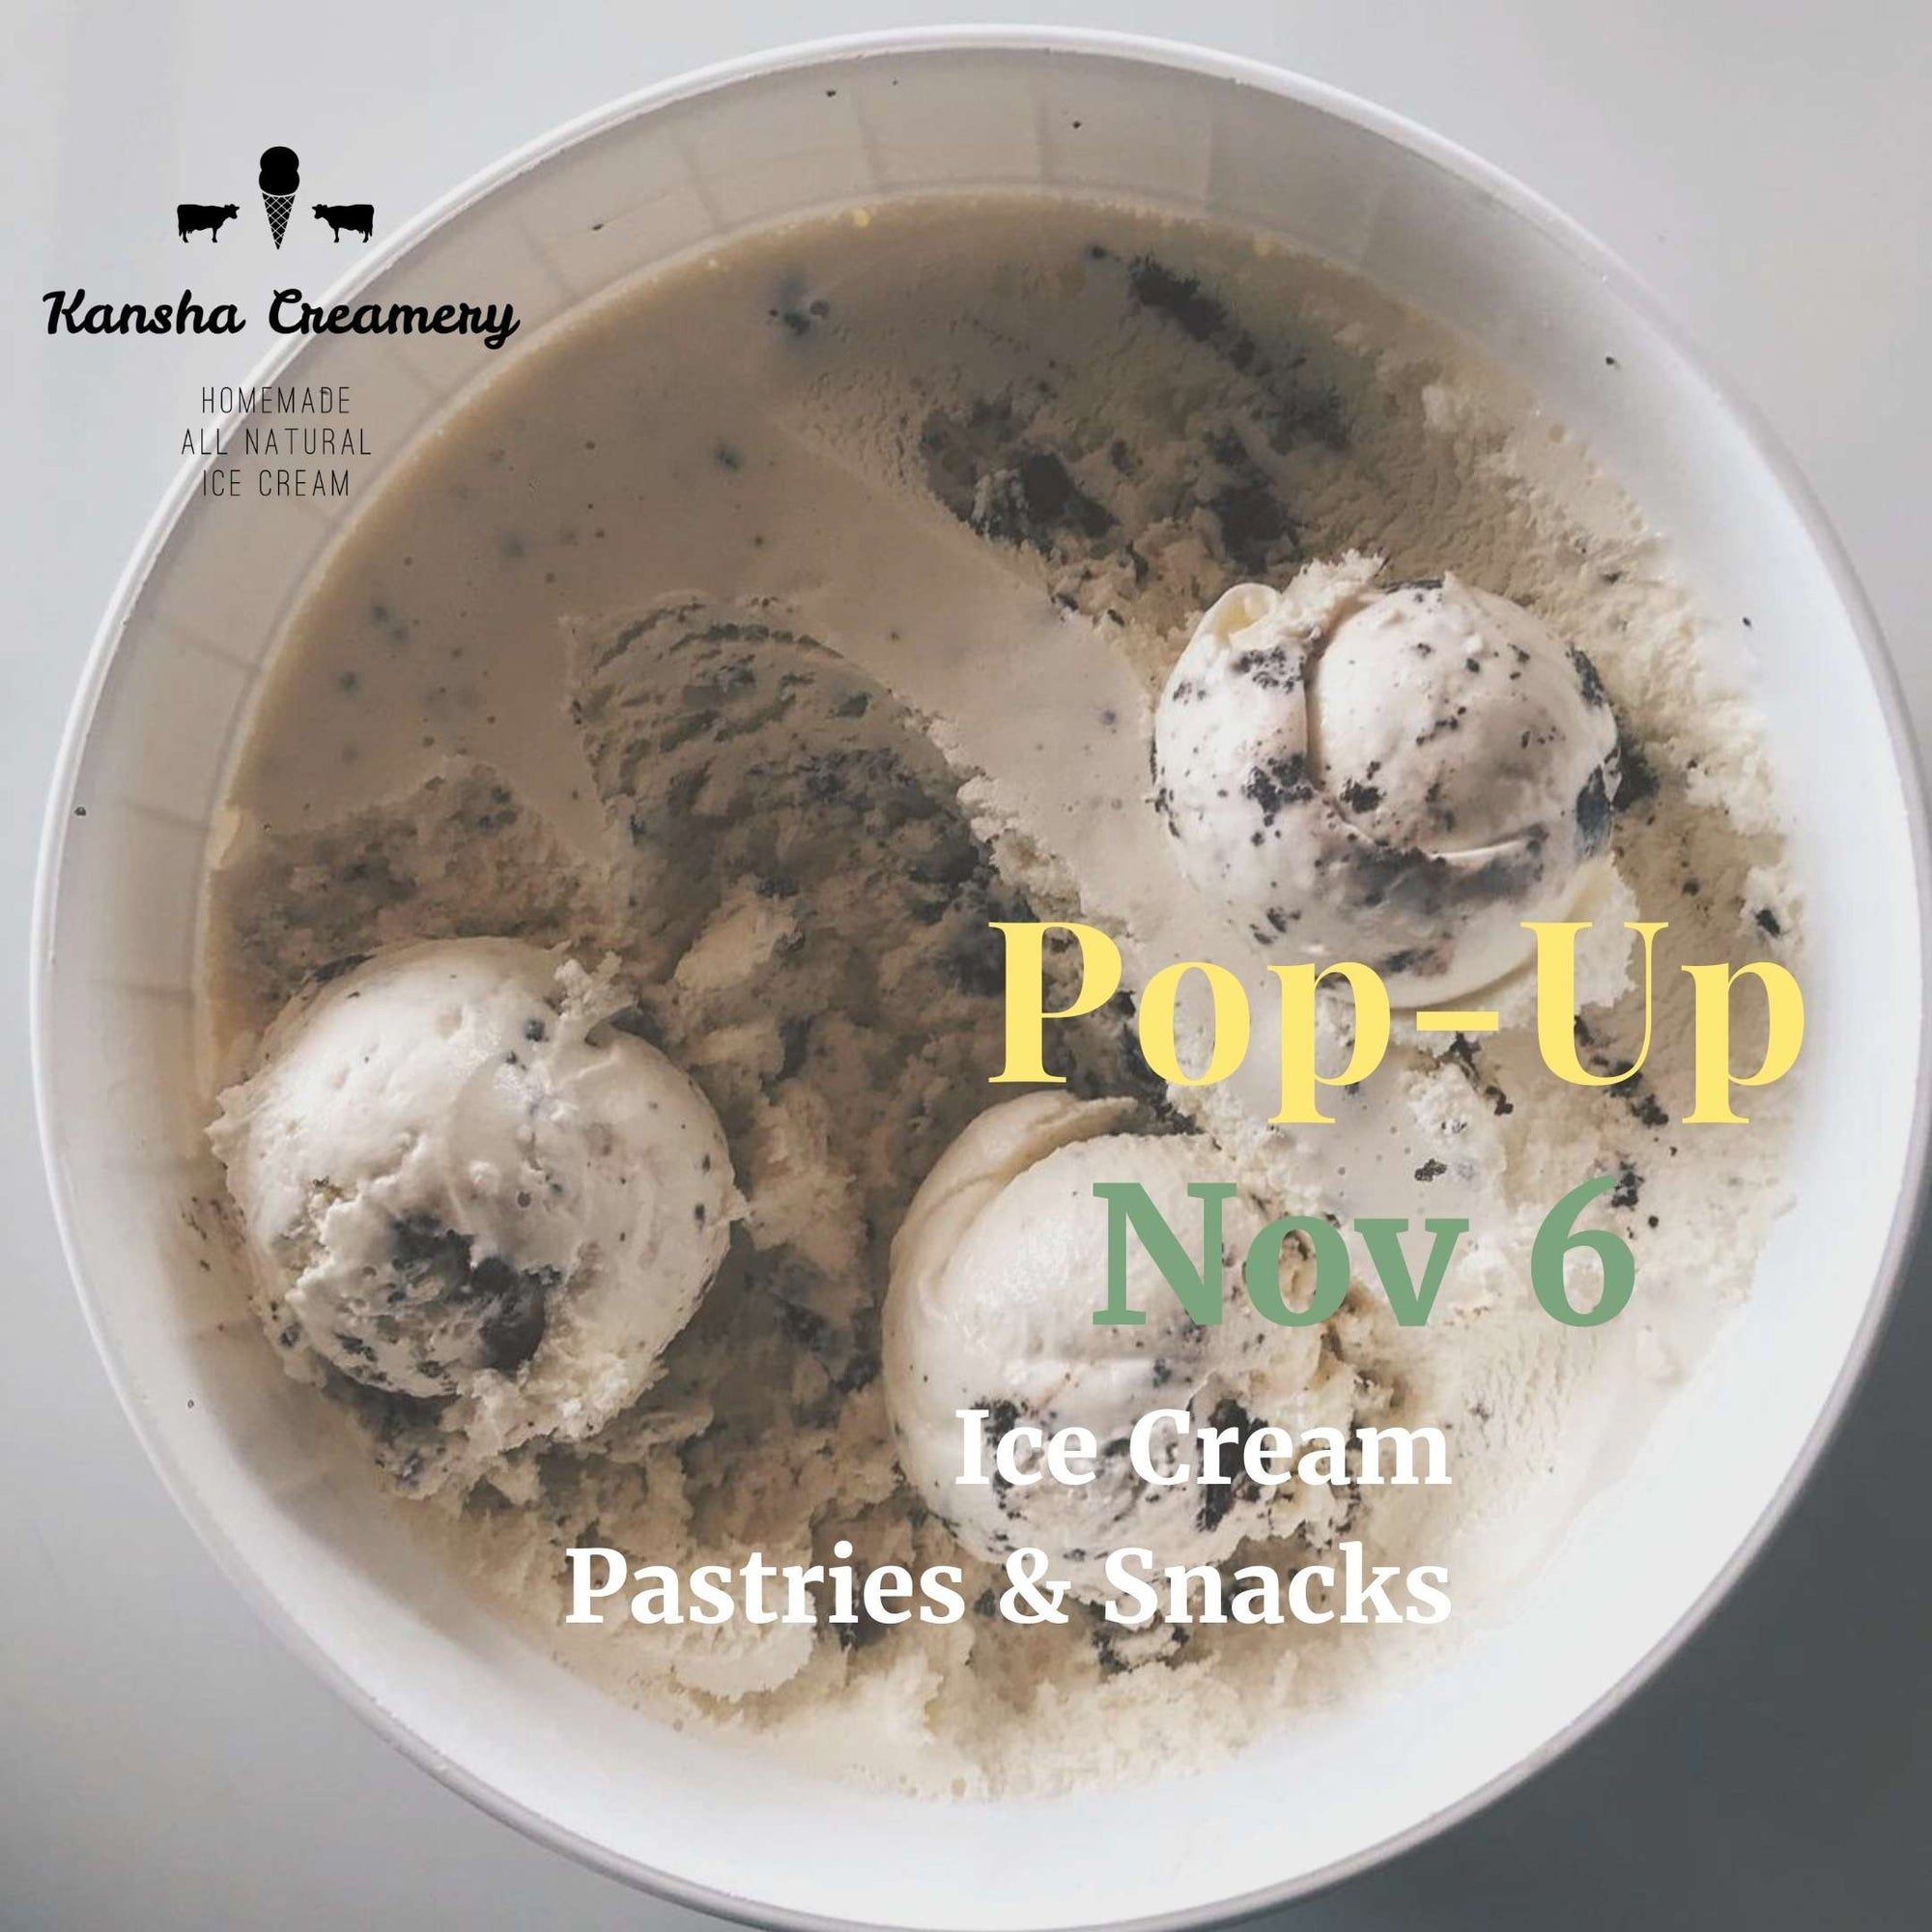 Pop-Up Event: Kansha Creamery | Friday, November 6, 2020 | 3:00pm - 4:00pm